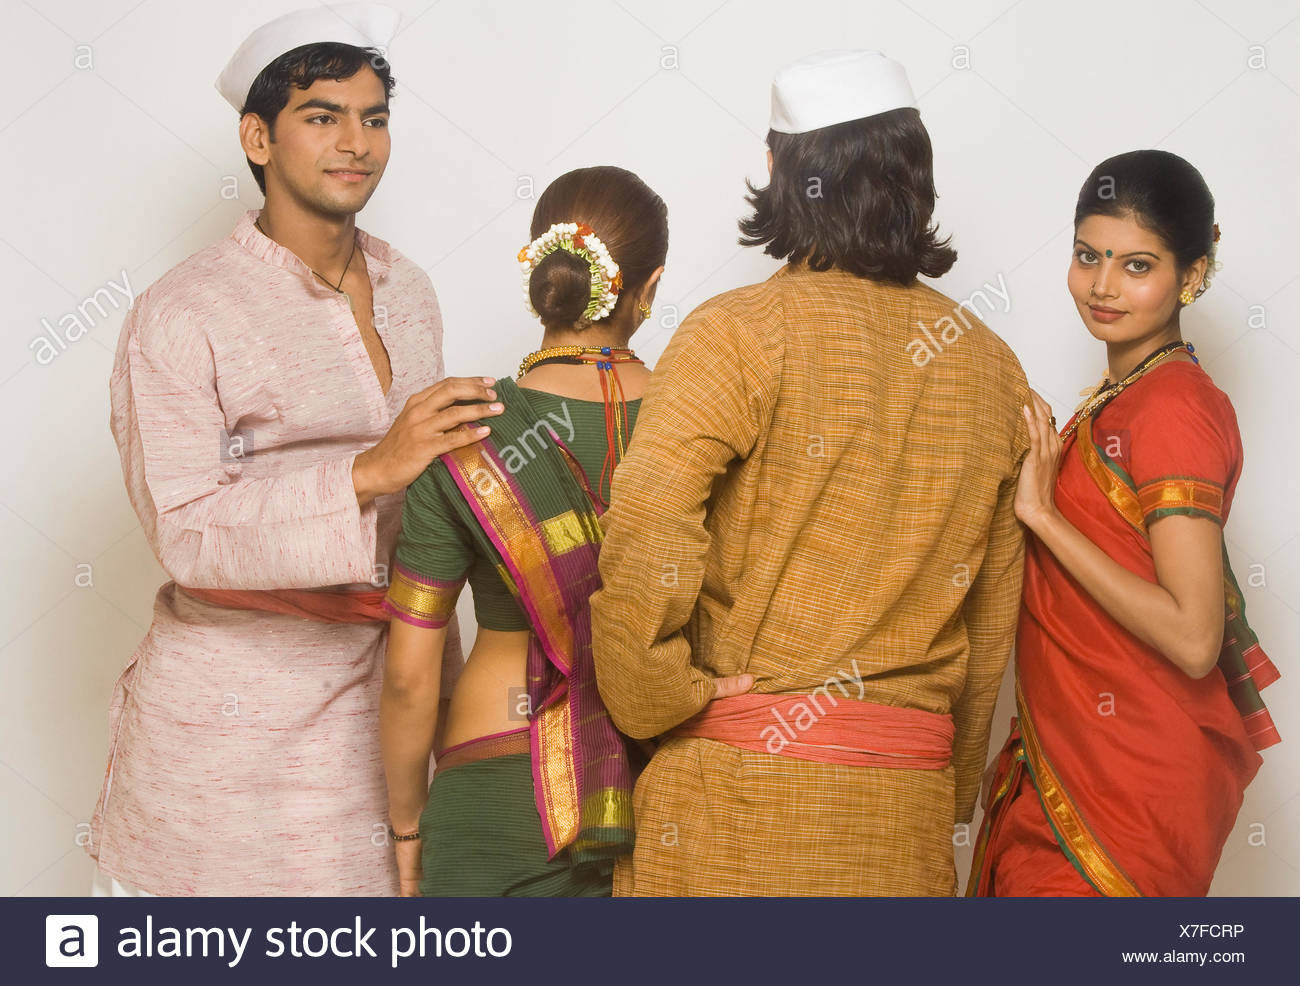 Folk dancers standing together in traditional Maharashtrian dress - Stock Image